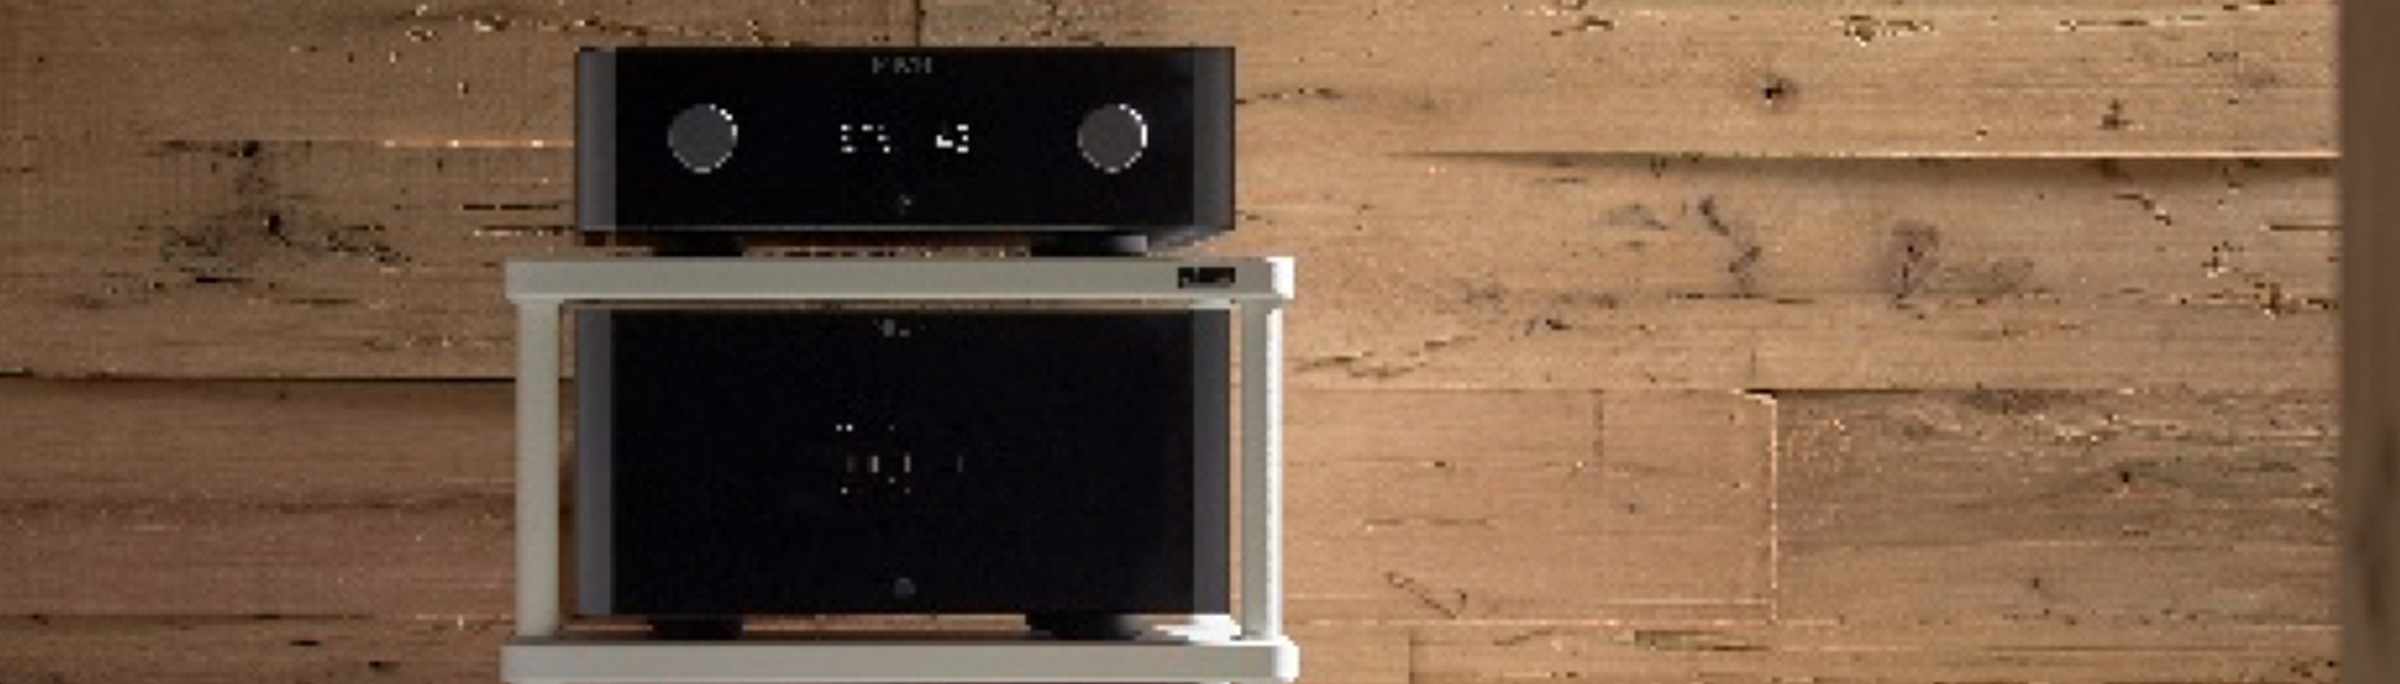 Audio and Video for Today's Generation – Backed by Decades of Innovation.